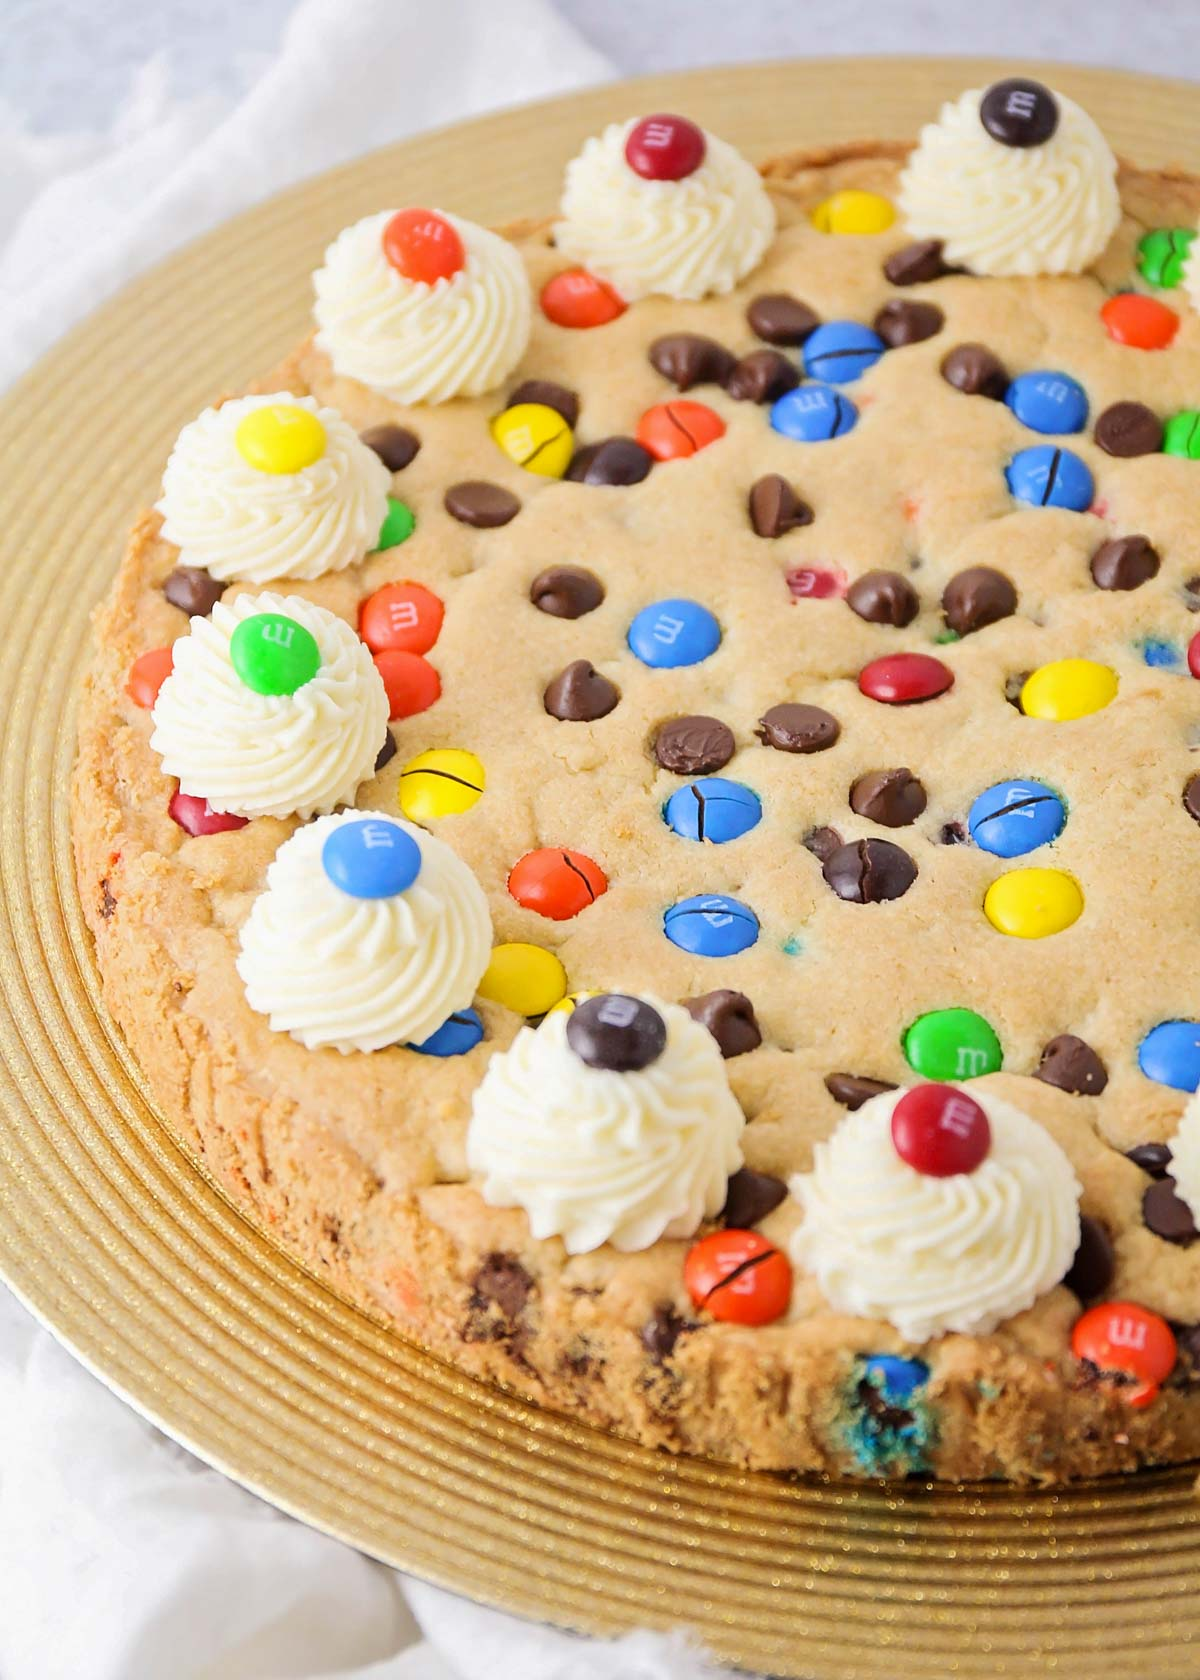 Close up of a homemade cookie cake topped with frosting and M&M's